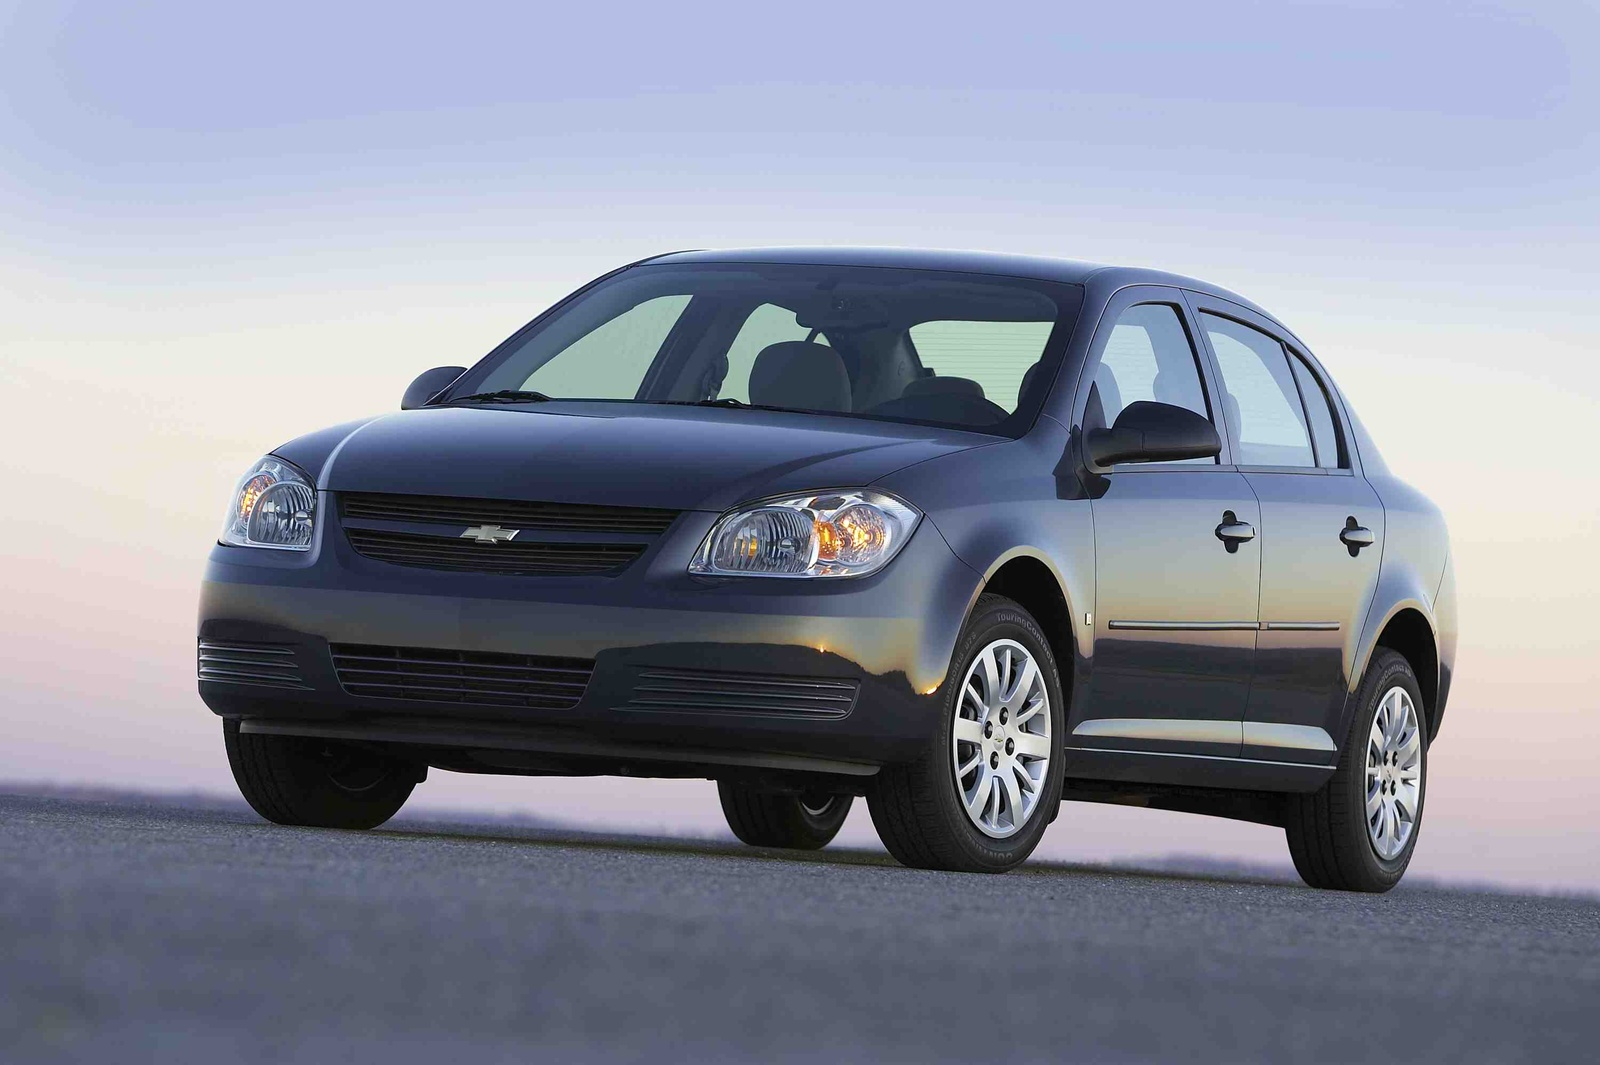 Chevrolet Chevy 2010 - amazing photo gallery, some information and ...